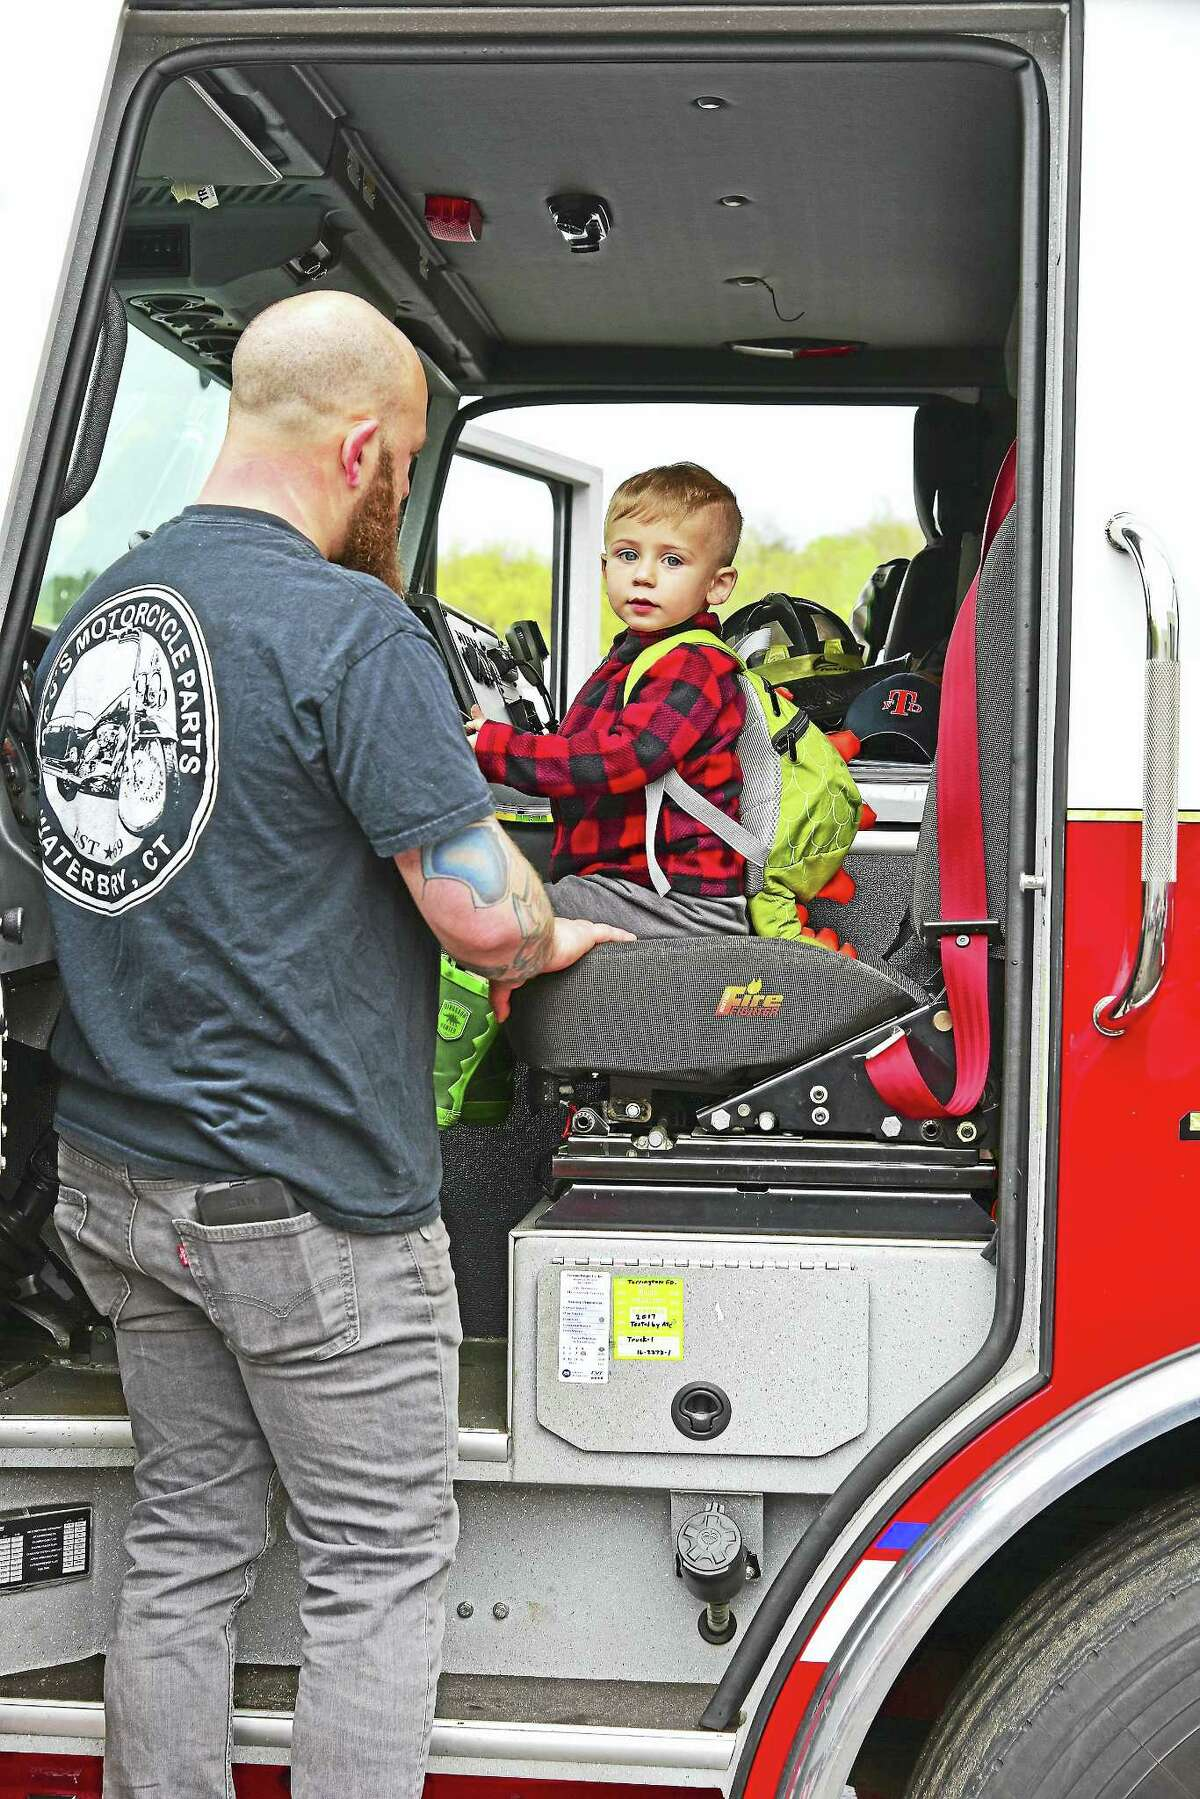 Children and their parents had the opportunity to explore all kinds of vehicles, from construction machines and trucks to emergency service vehicles, at O&G Industries' Touch-a-Truck event on May 6 in Torrington.